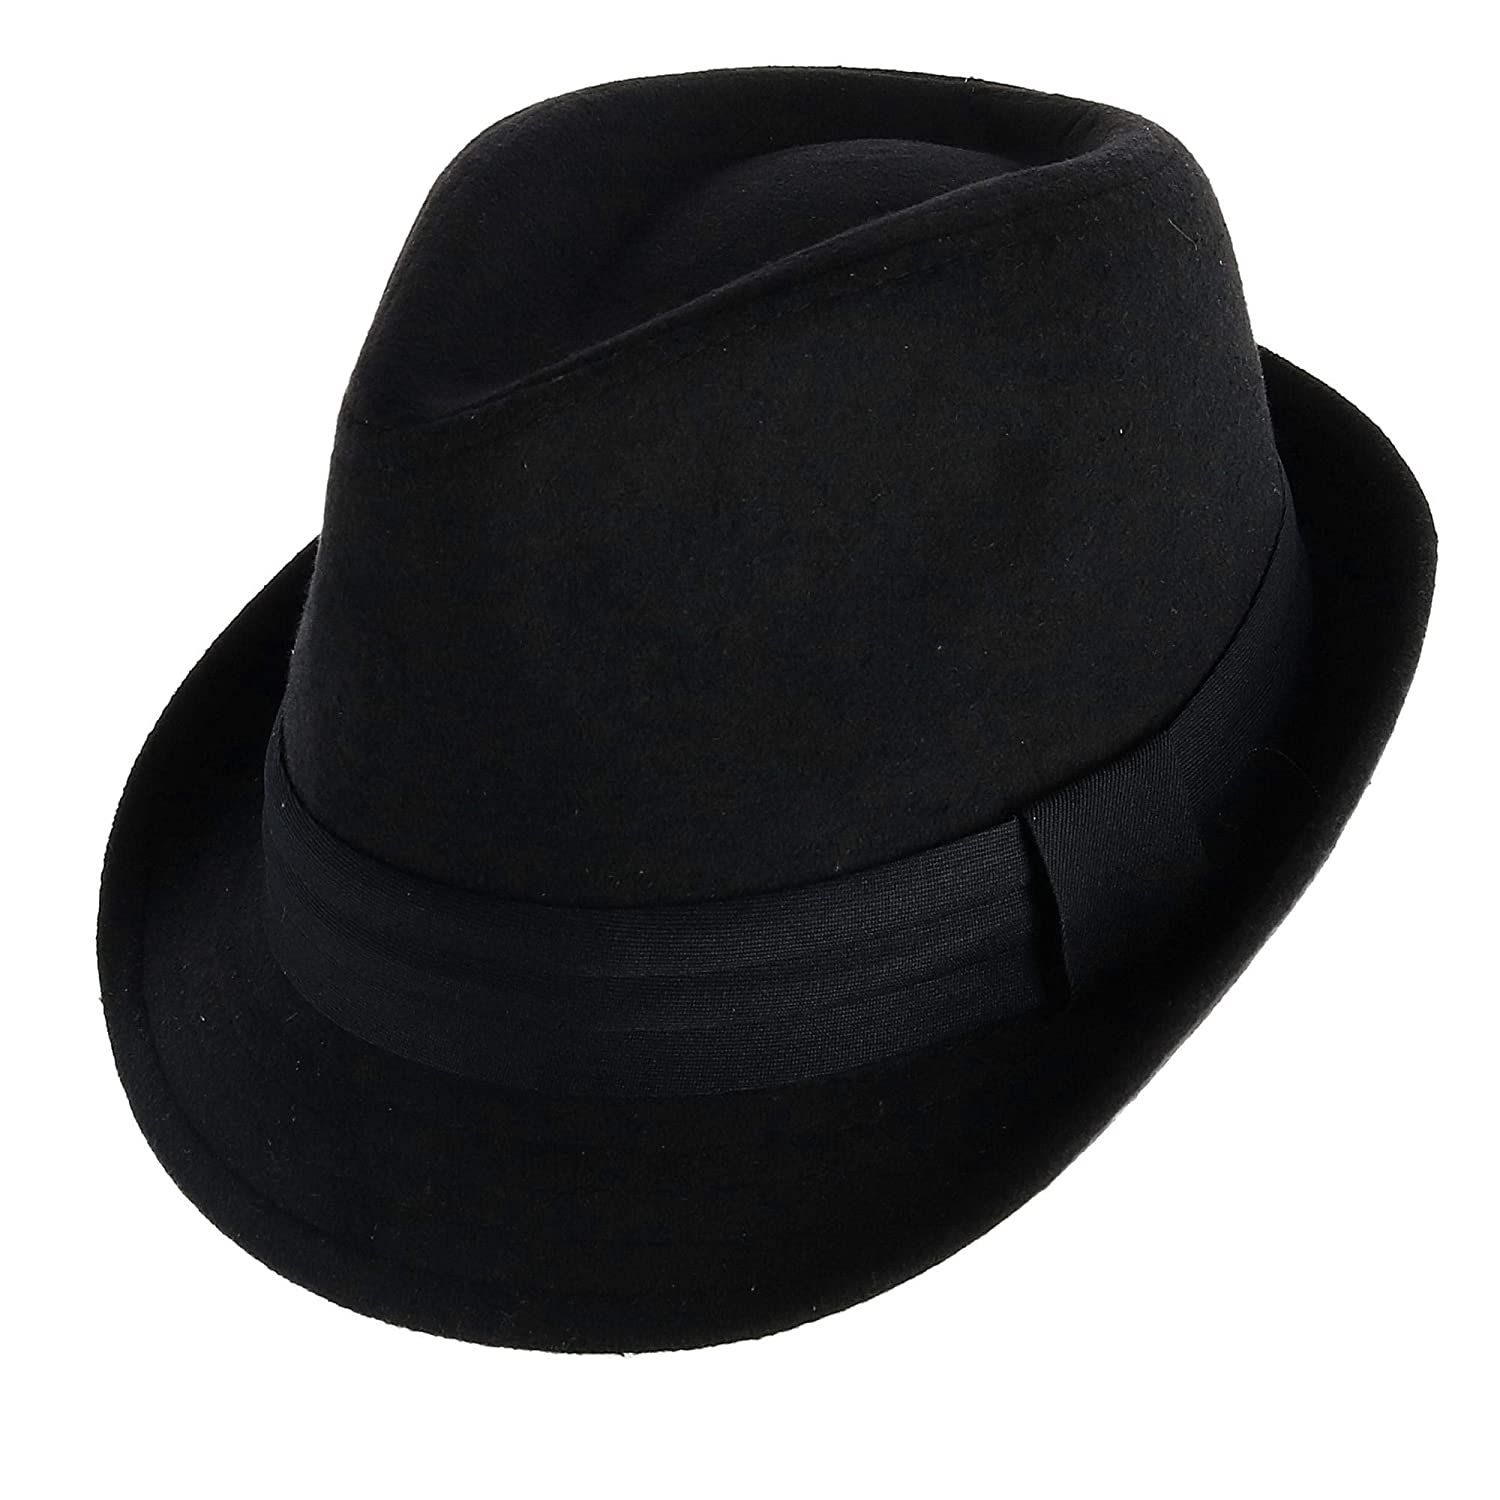 c7a0a62de26d1 WESTEND Unisex Fedora with Large Black Band at Amazon Men's Clothing store: